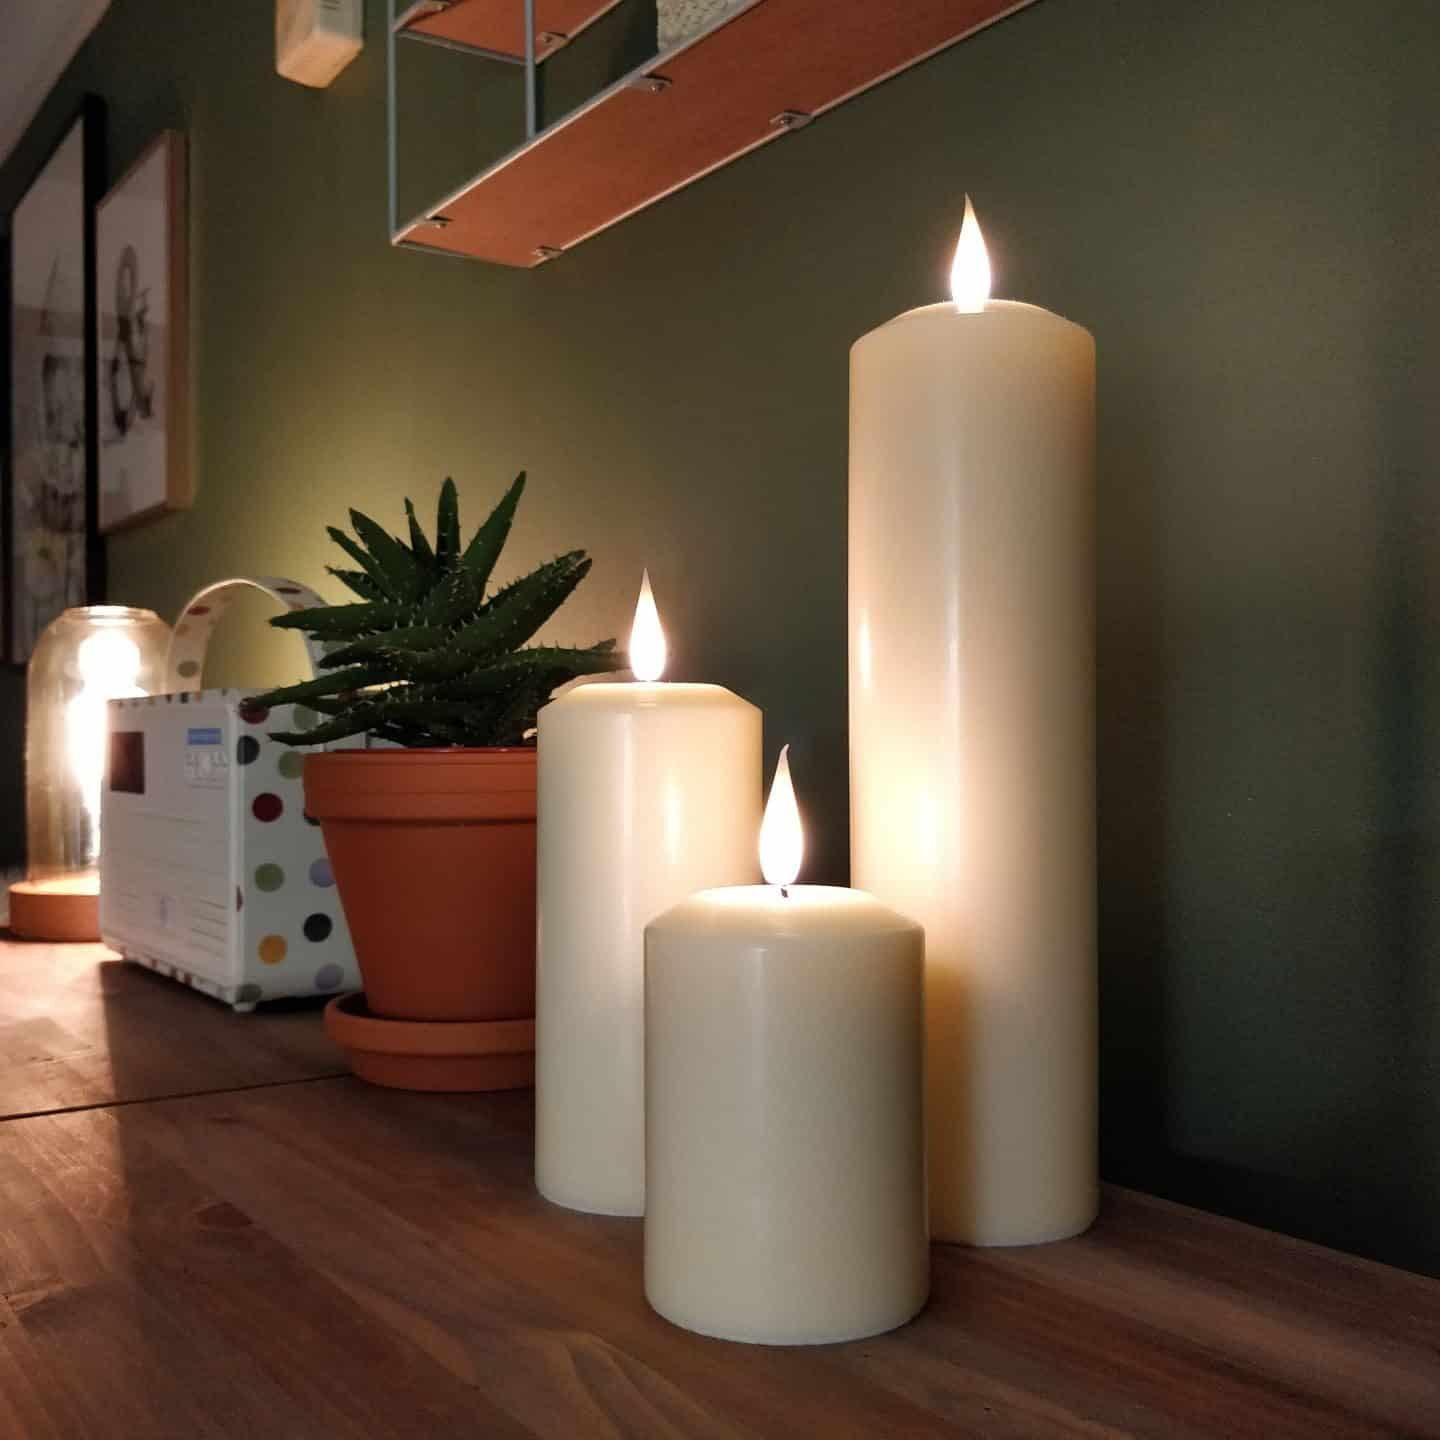 Realistic LED candles from Candled on a sideboard 7